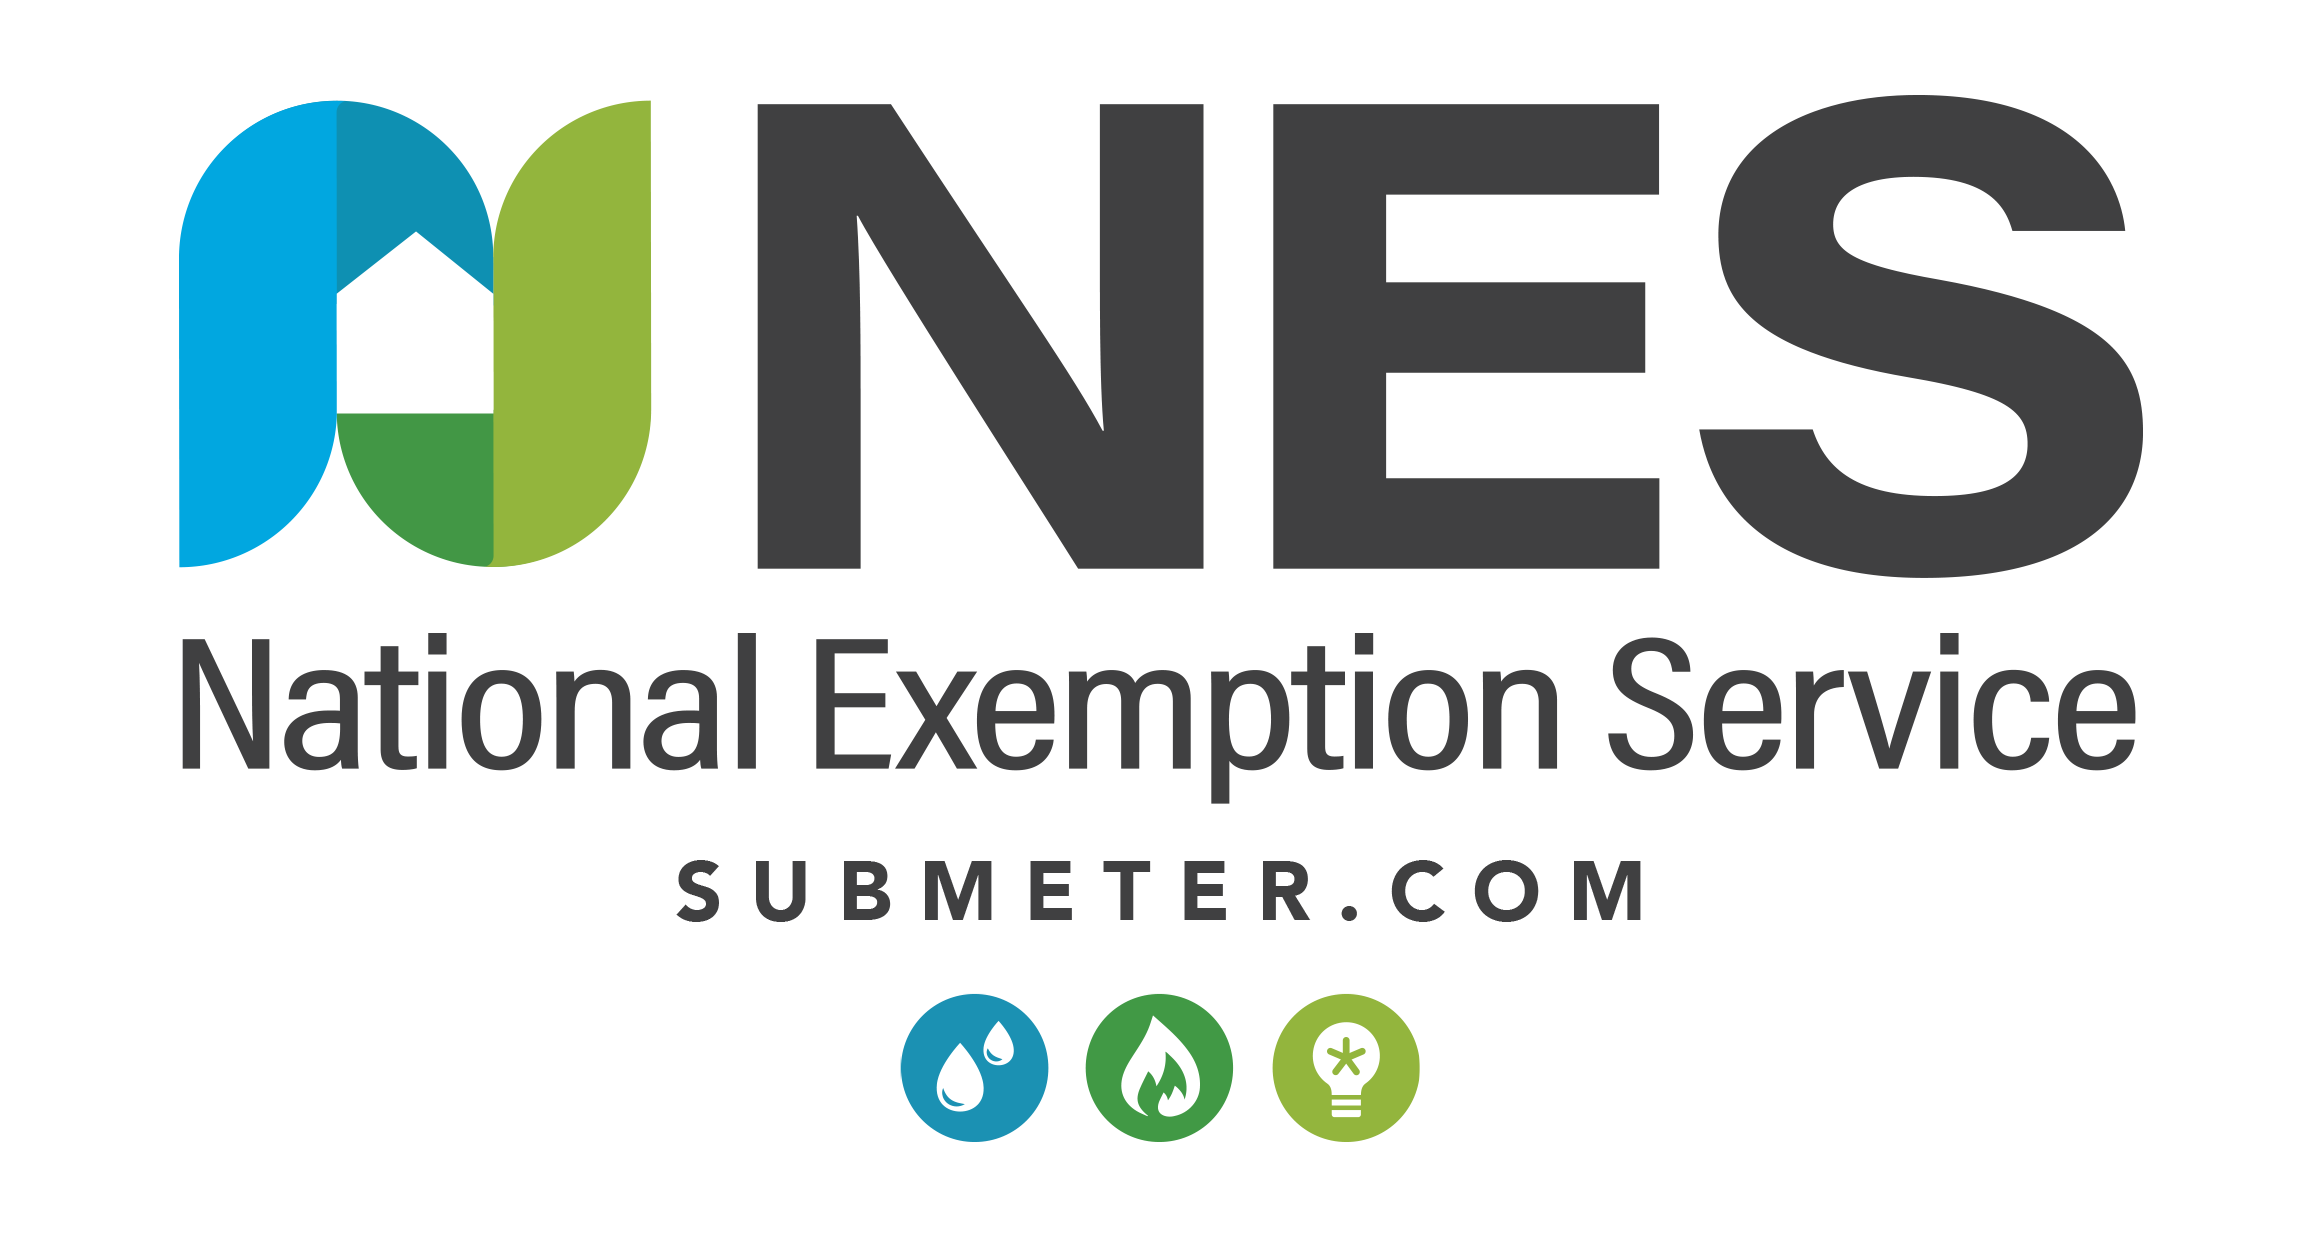 National Exemption Services